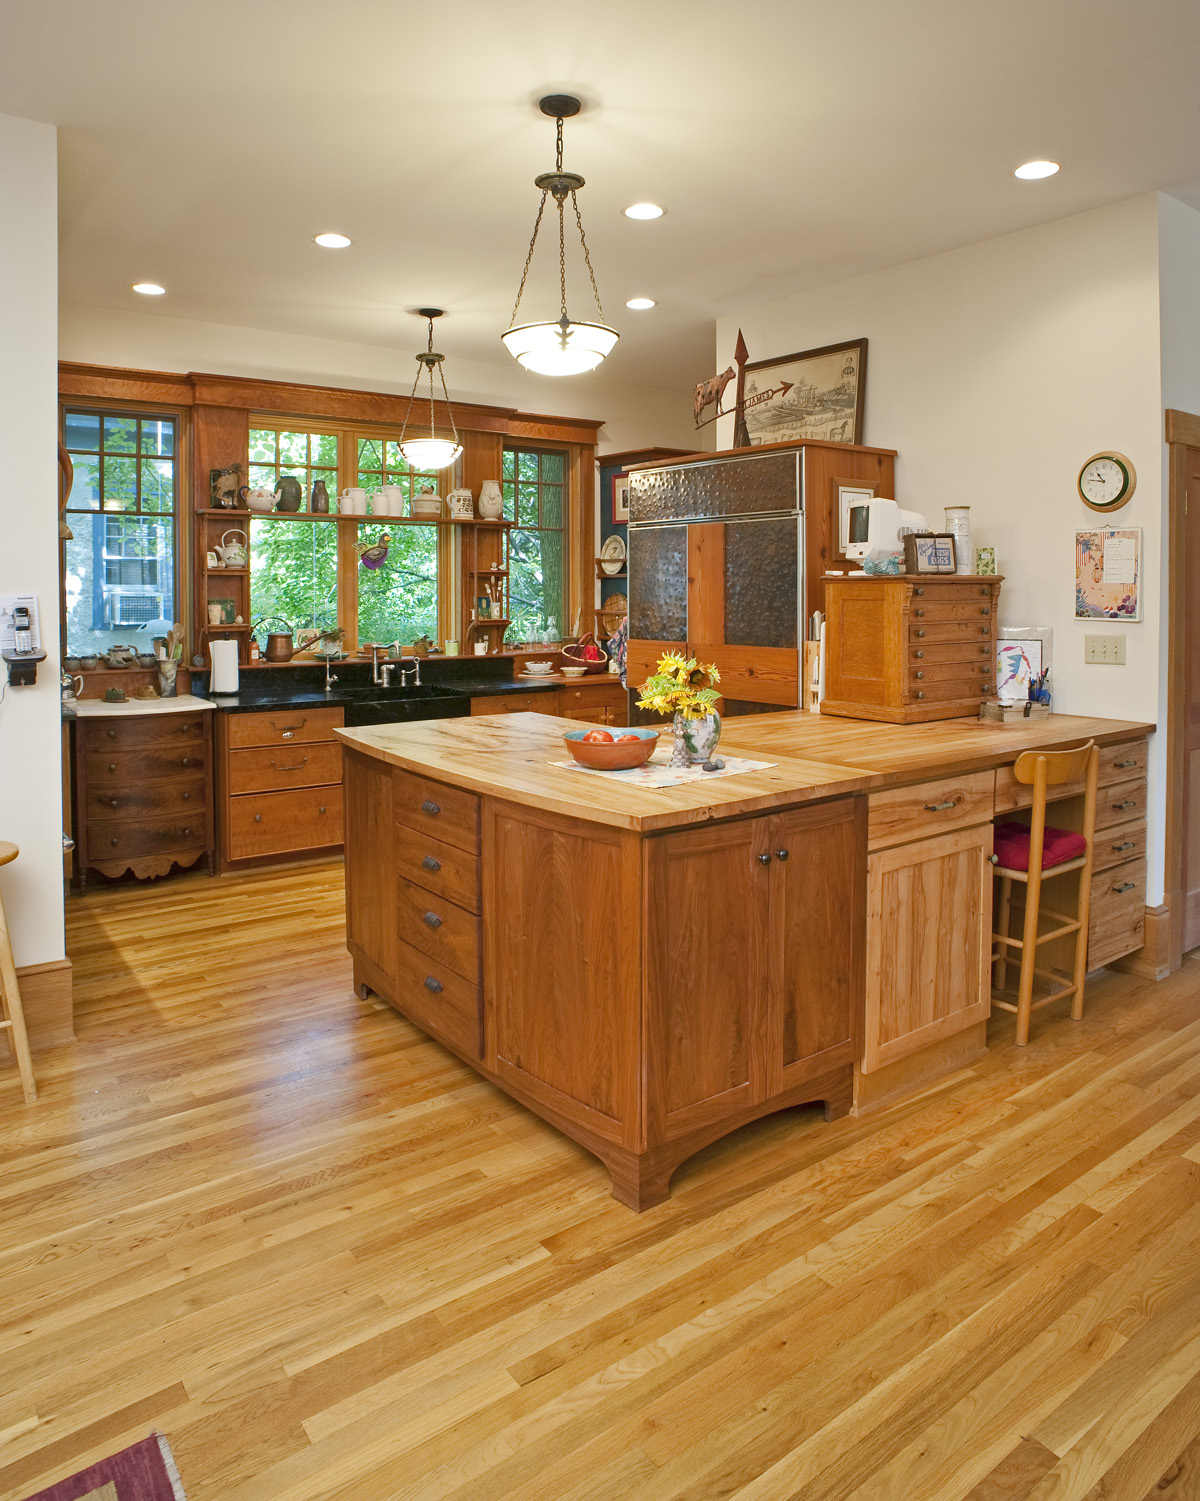 eclectic-kitchen-cabinets.jpg